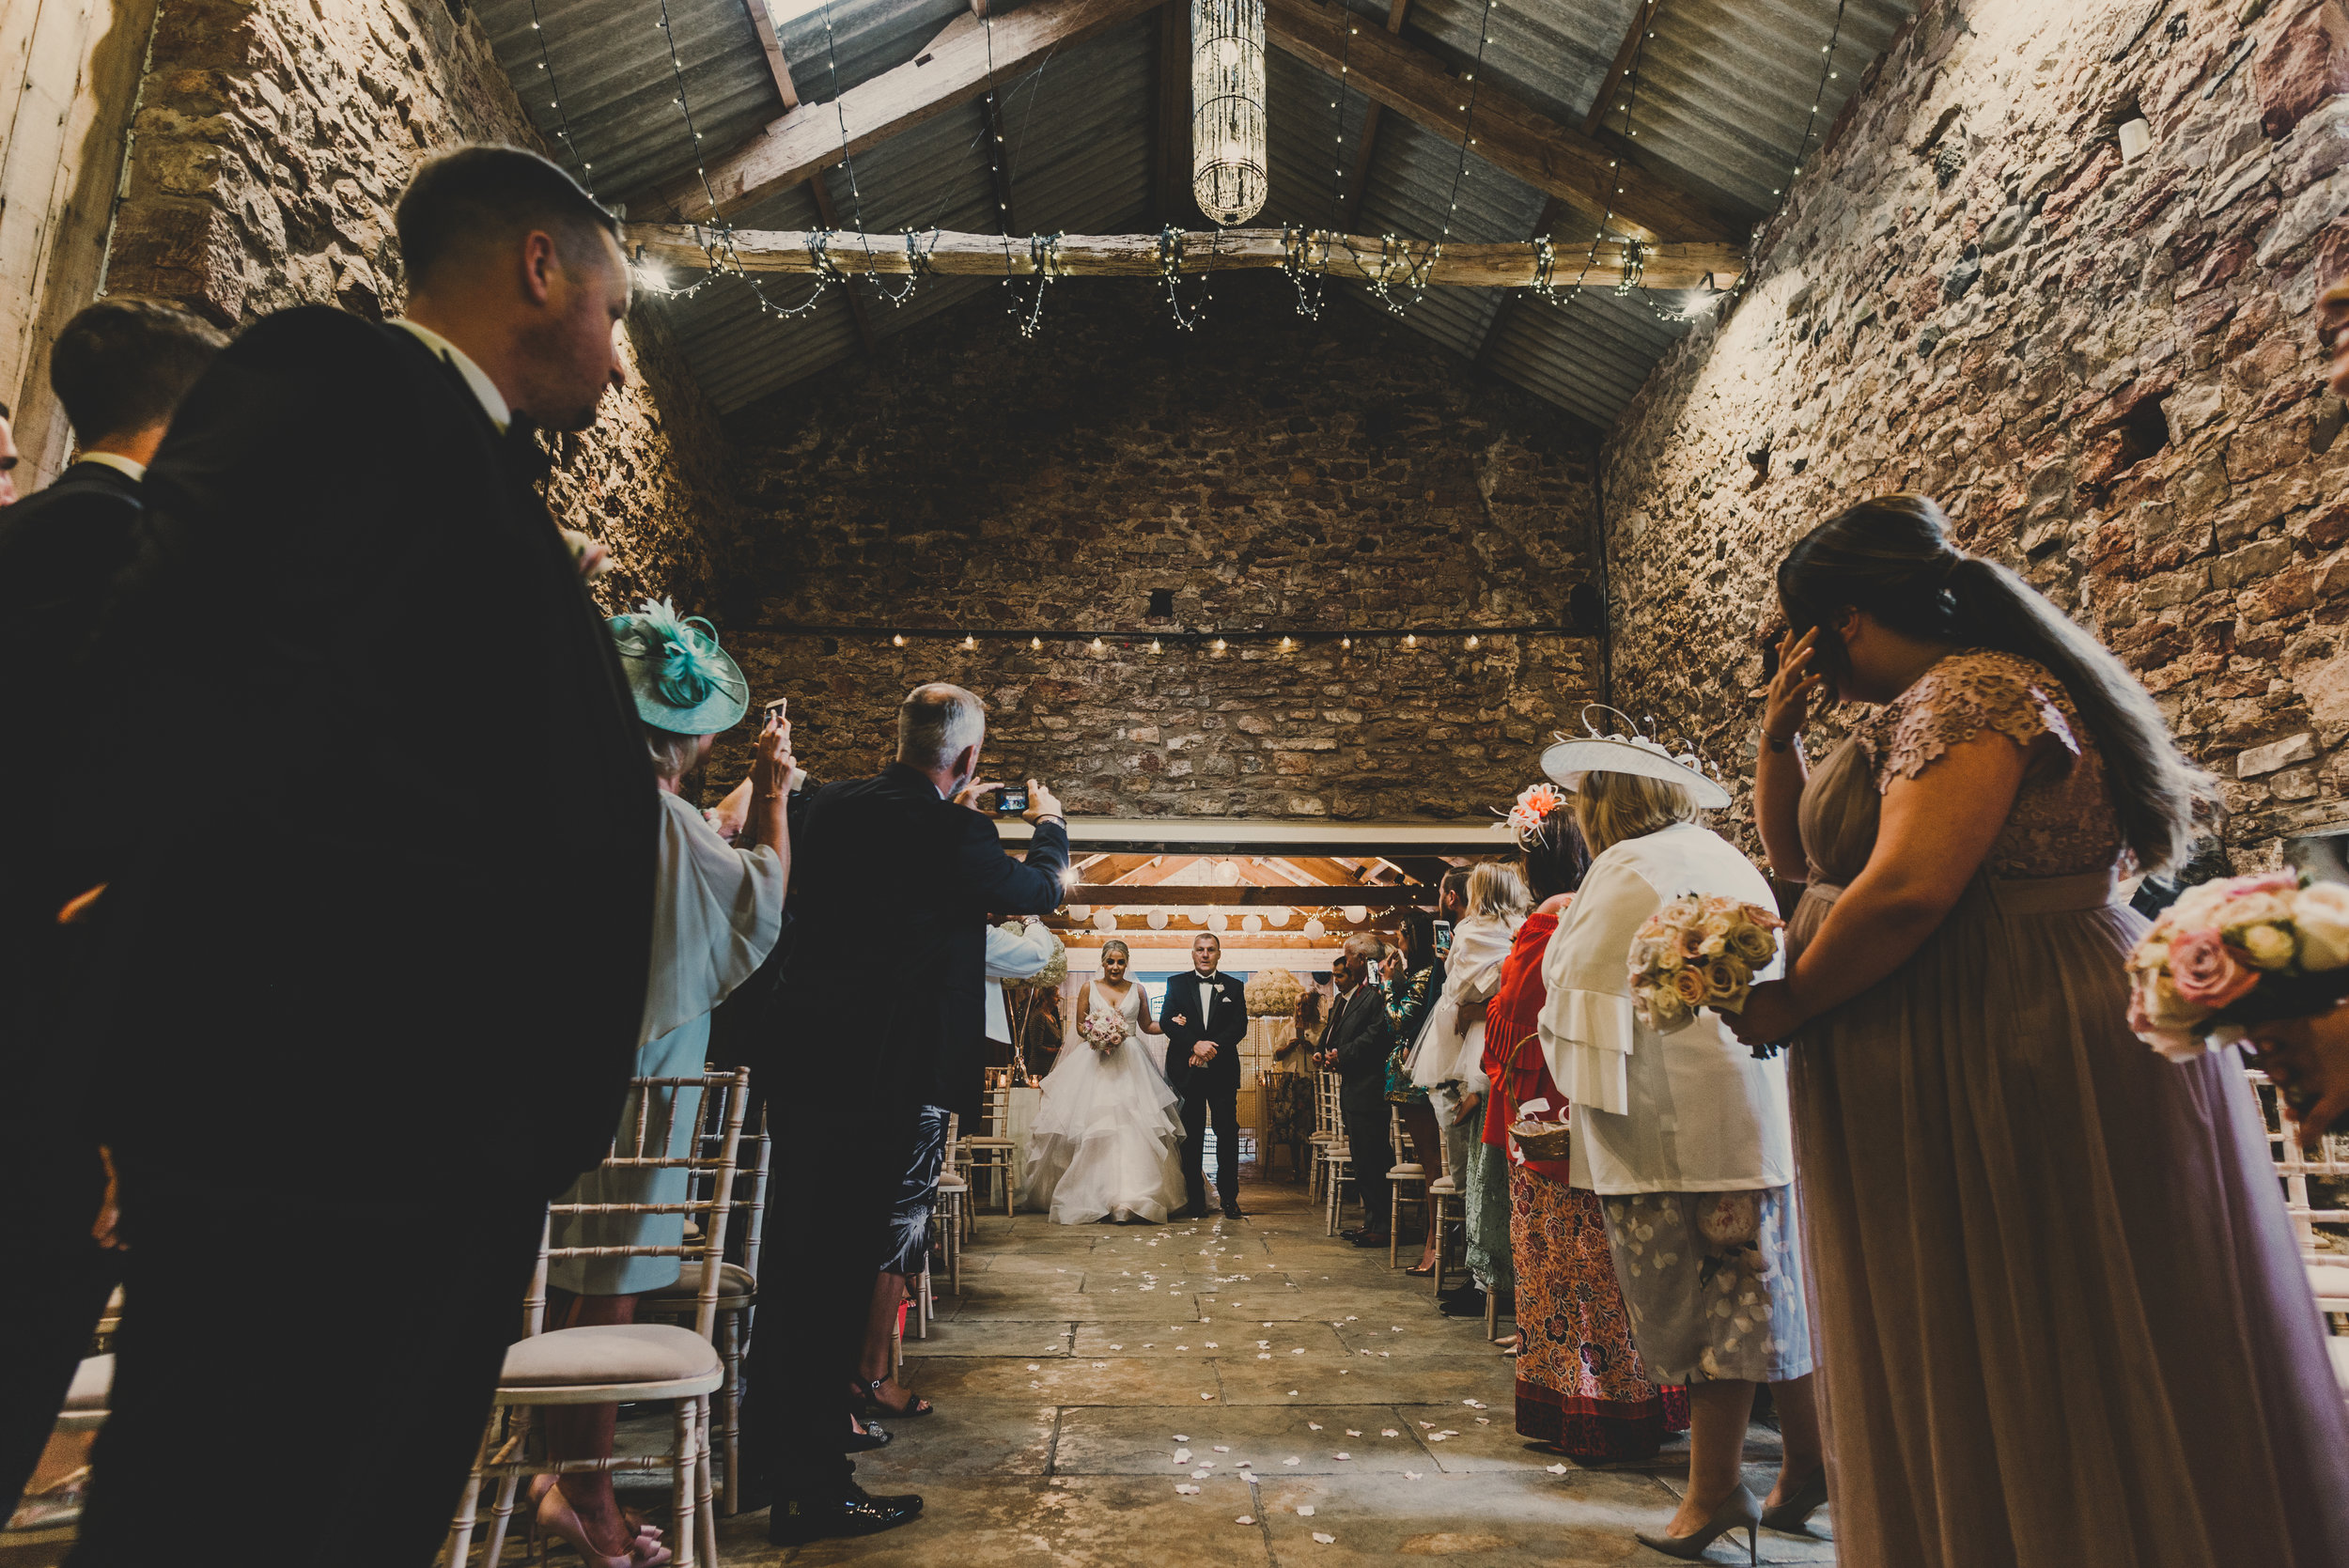 eden-wedding-barn-cumbria-wedding-photography (26).jpg